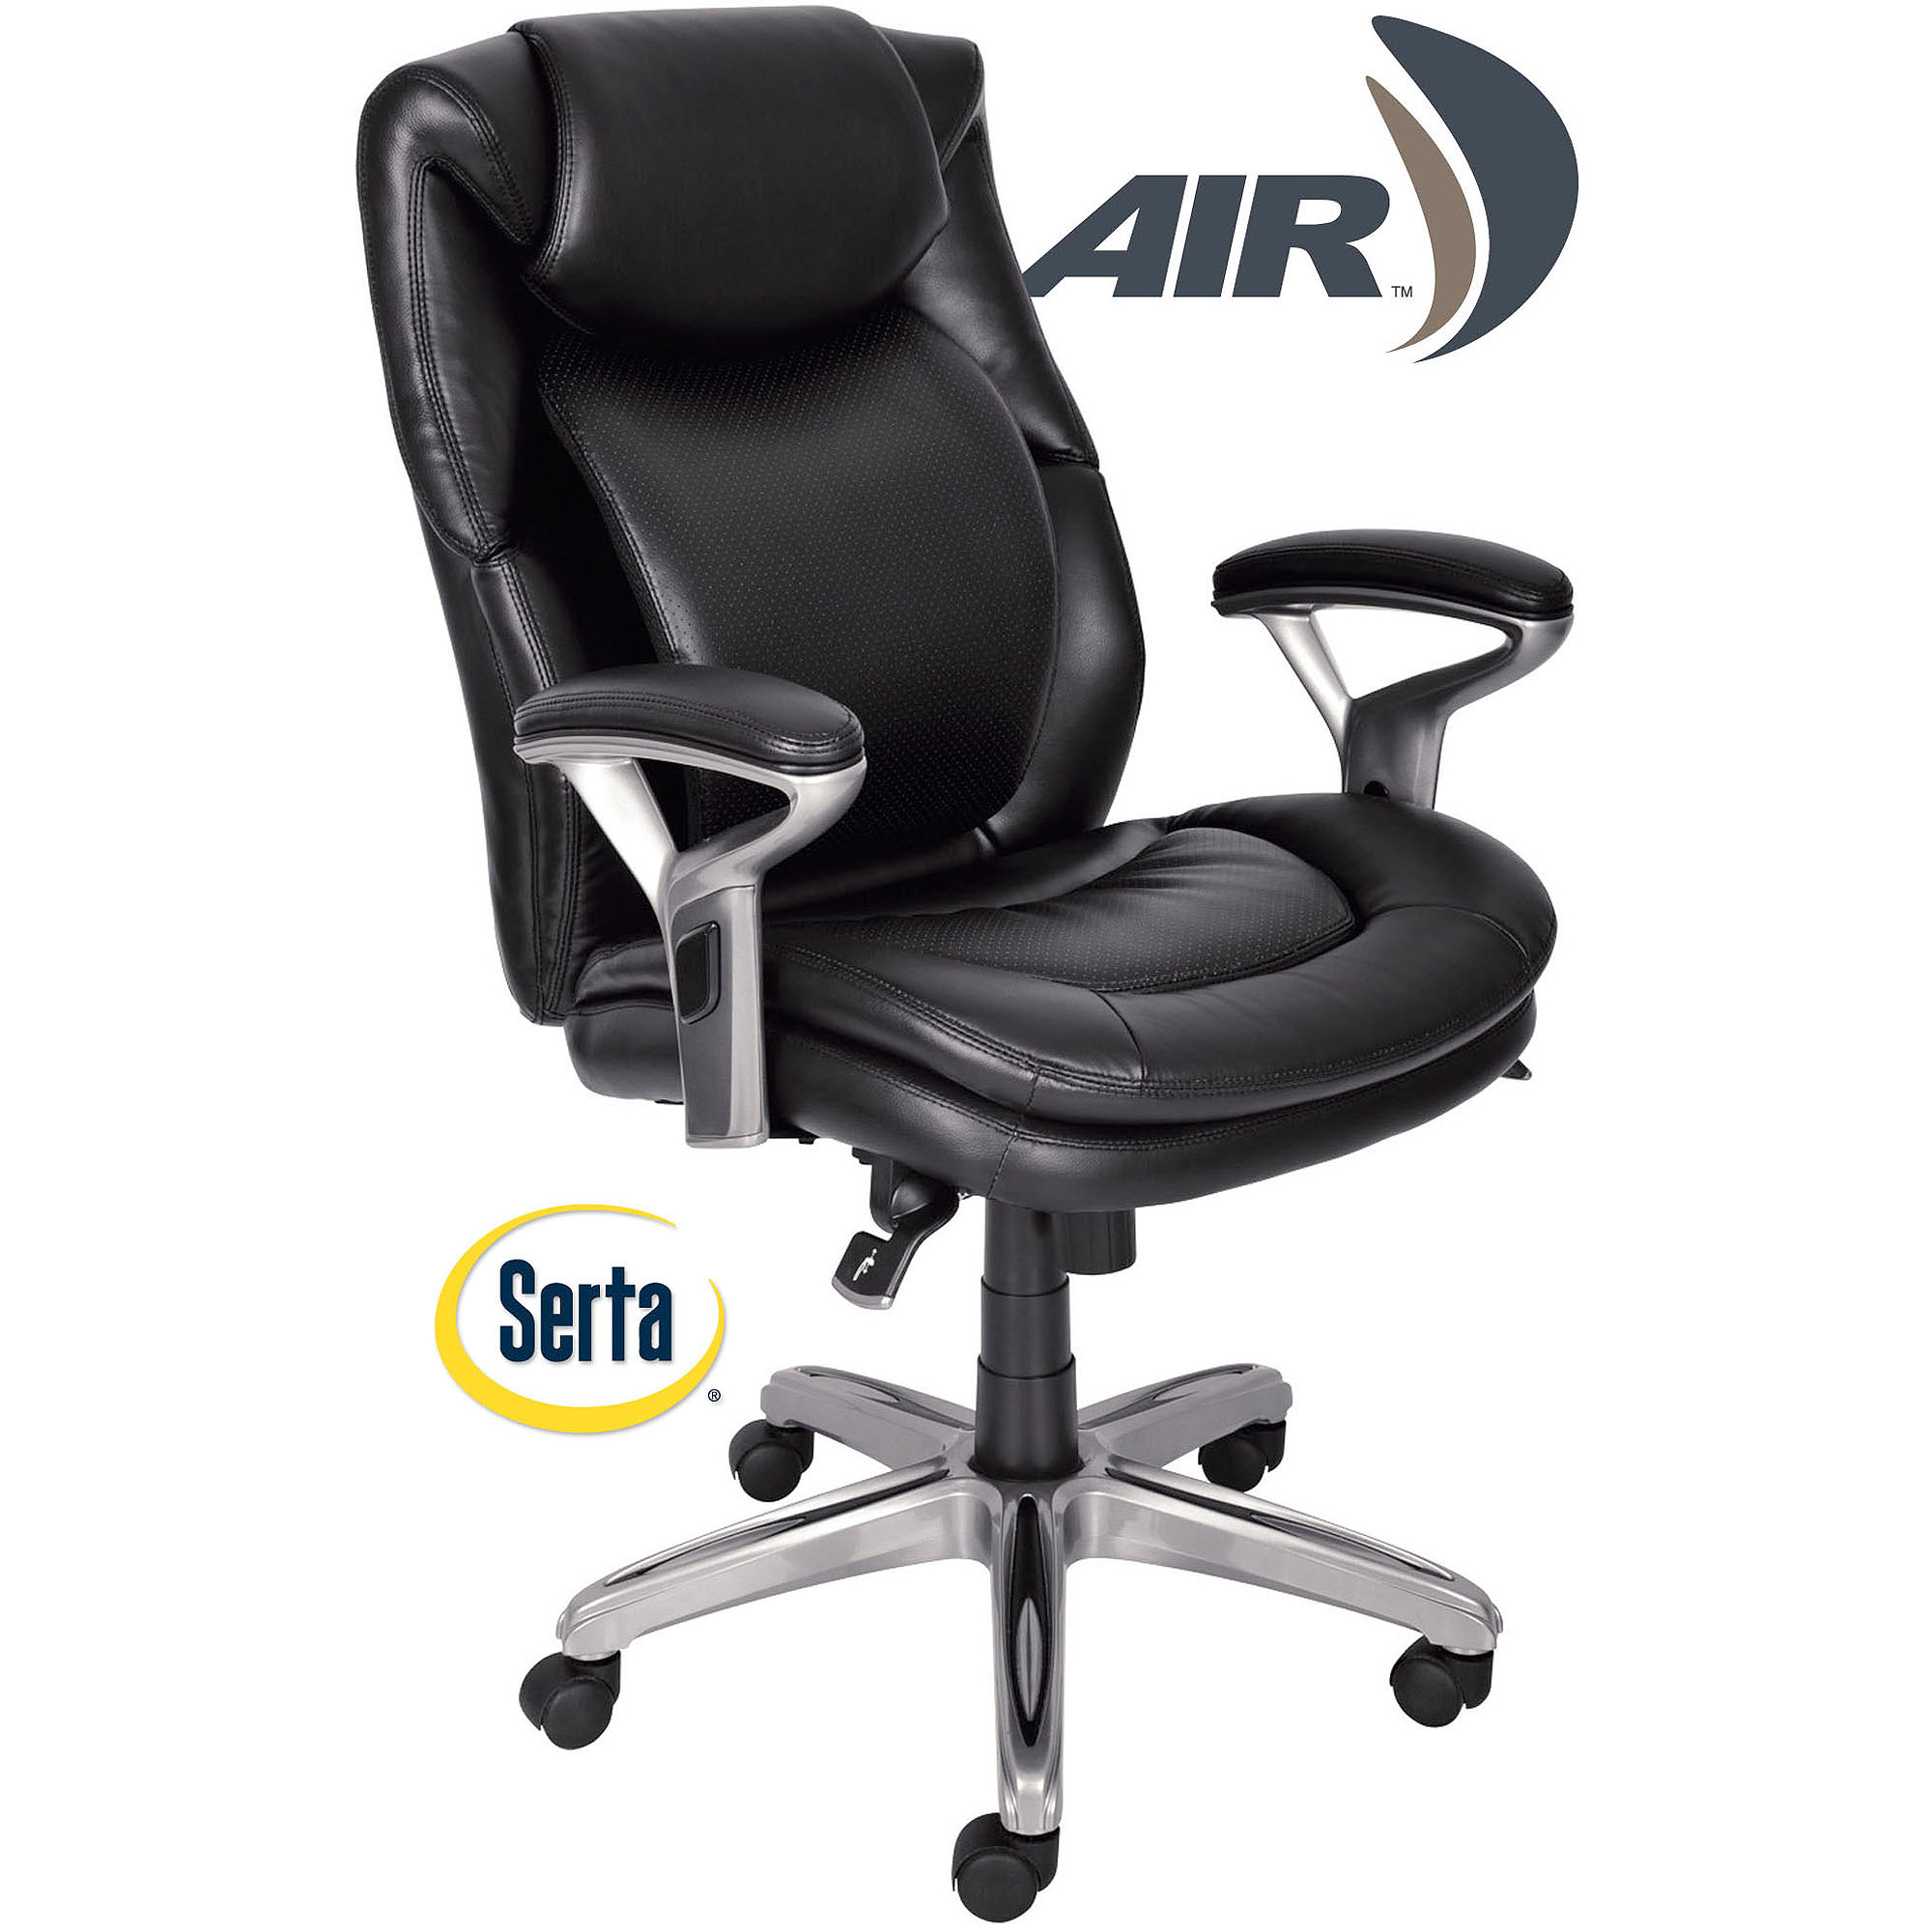 Serta Executive Office Chairs